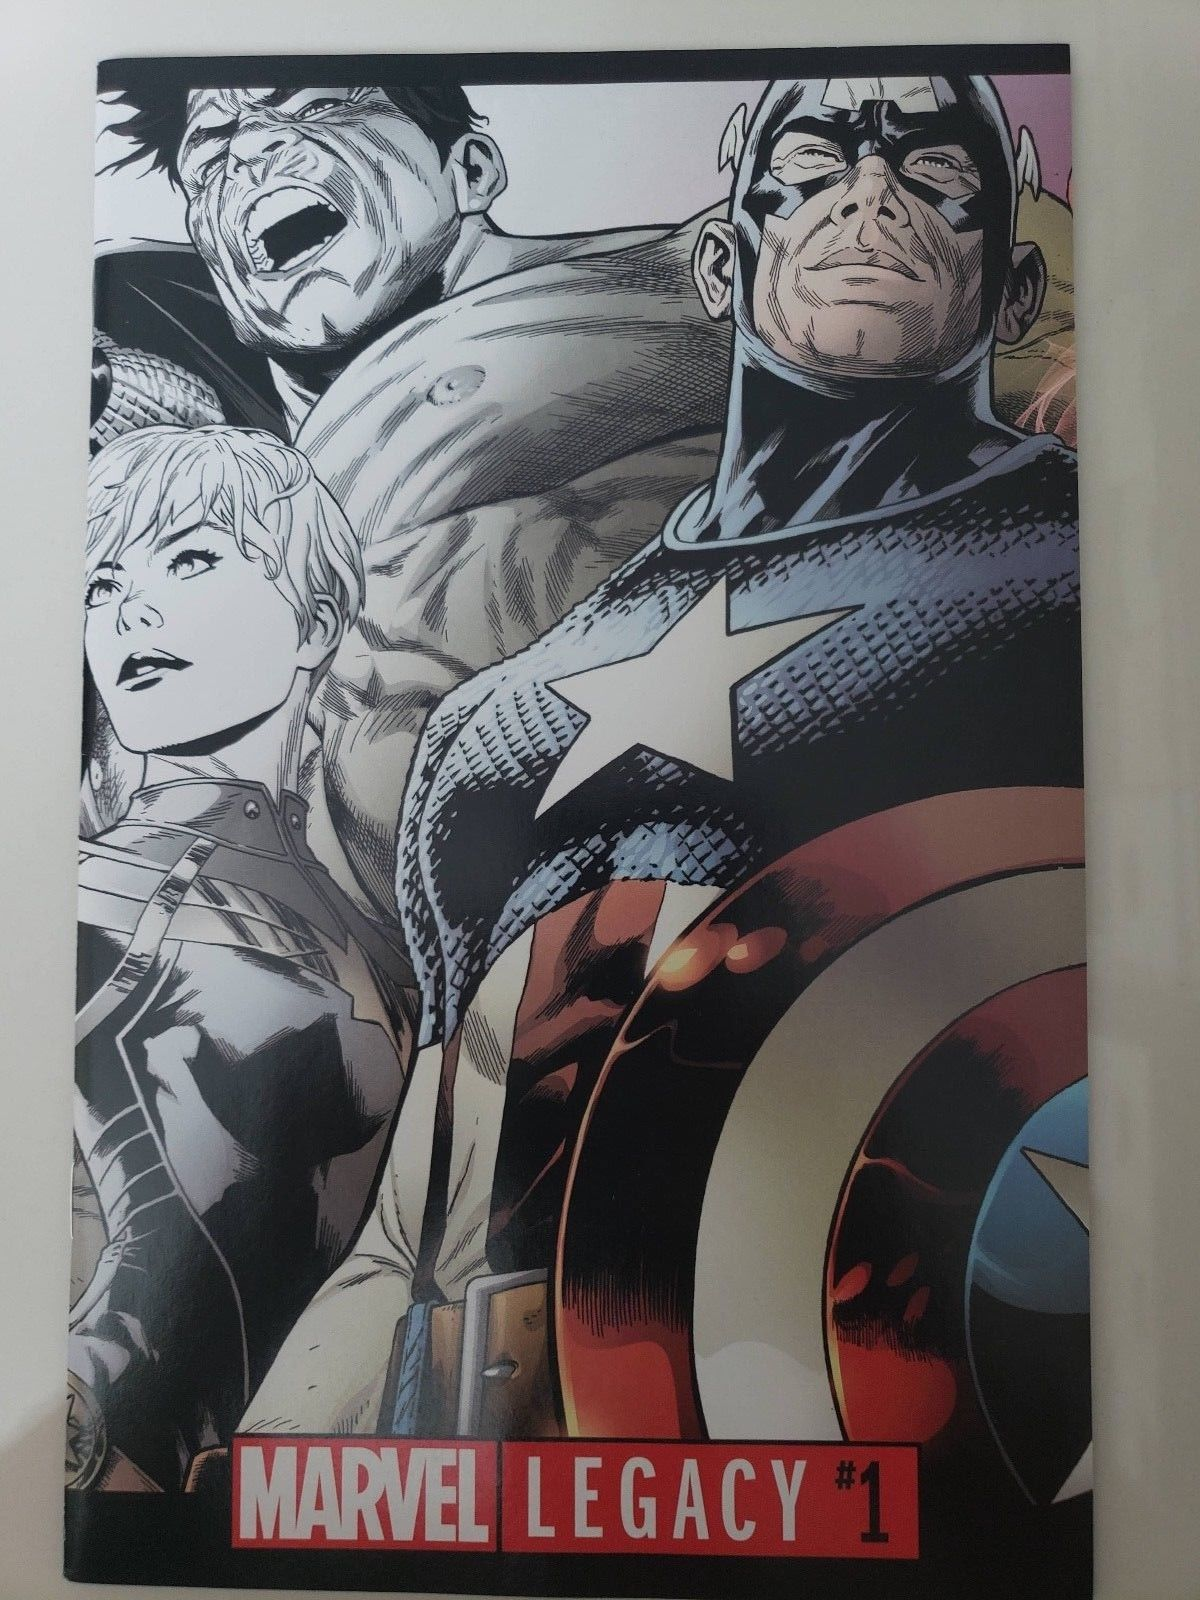 CAPTAIN AMERICA WHITE #1 ASRAR 1:25 INCENTIVE VARIANT COVER